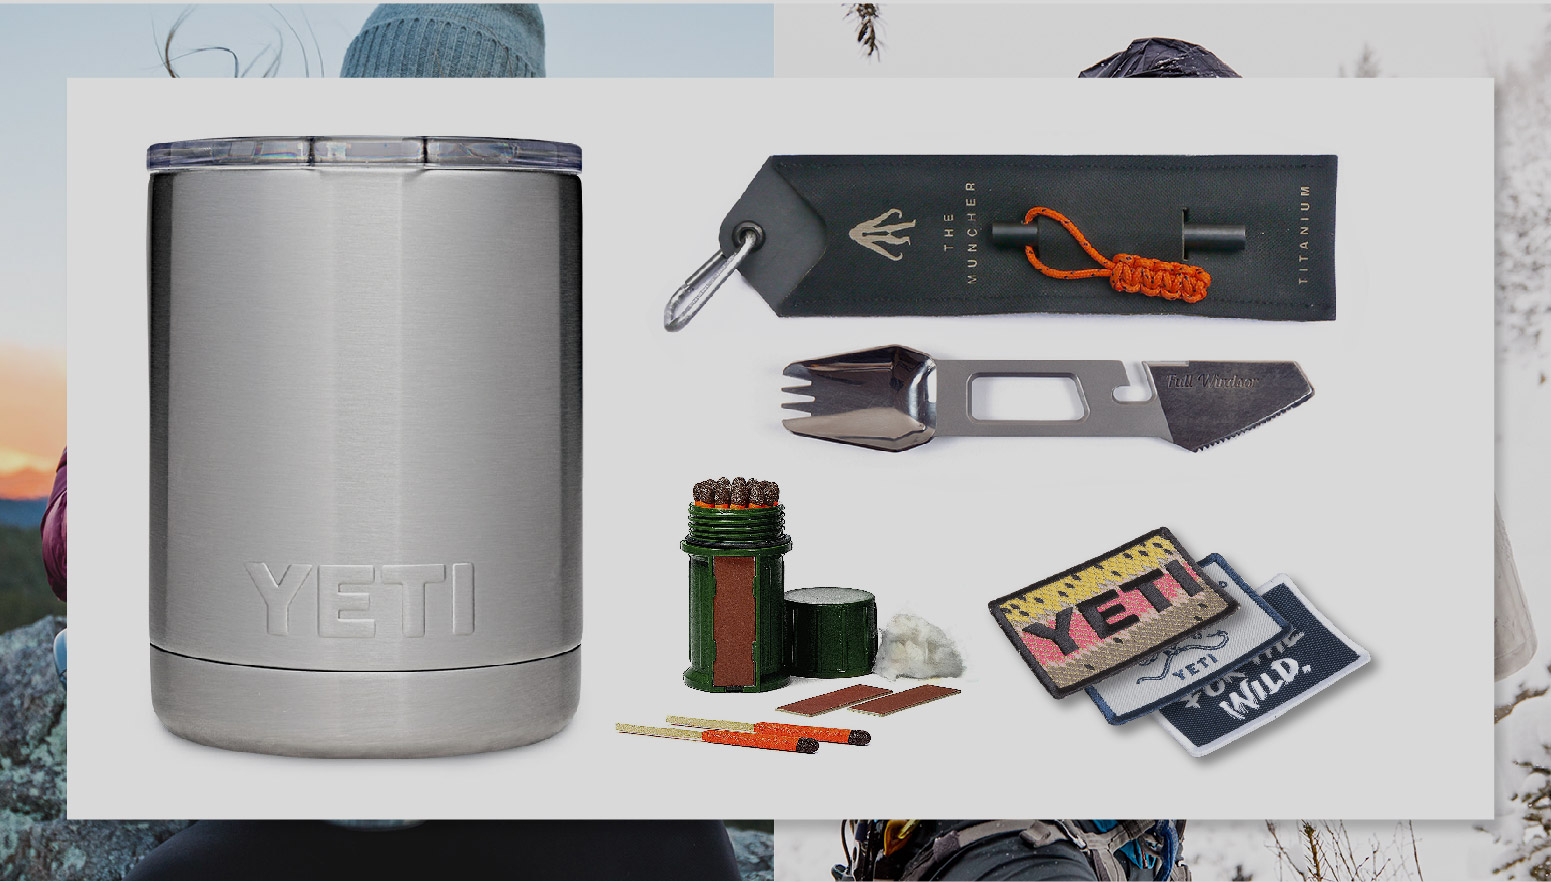 Yeti.   Holiday fire starter kit